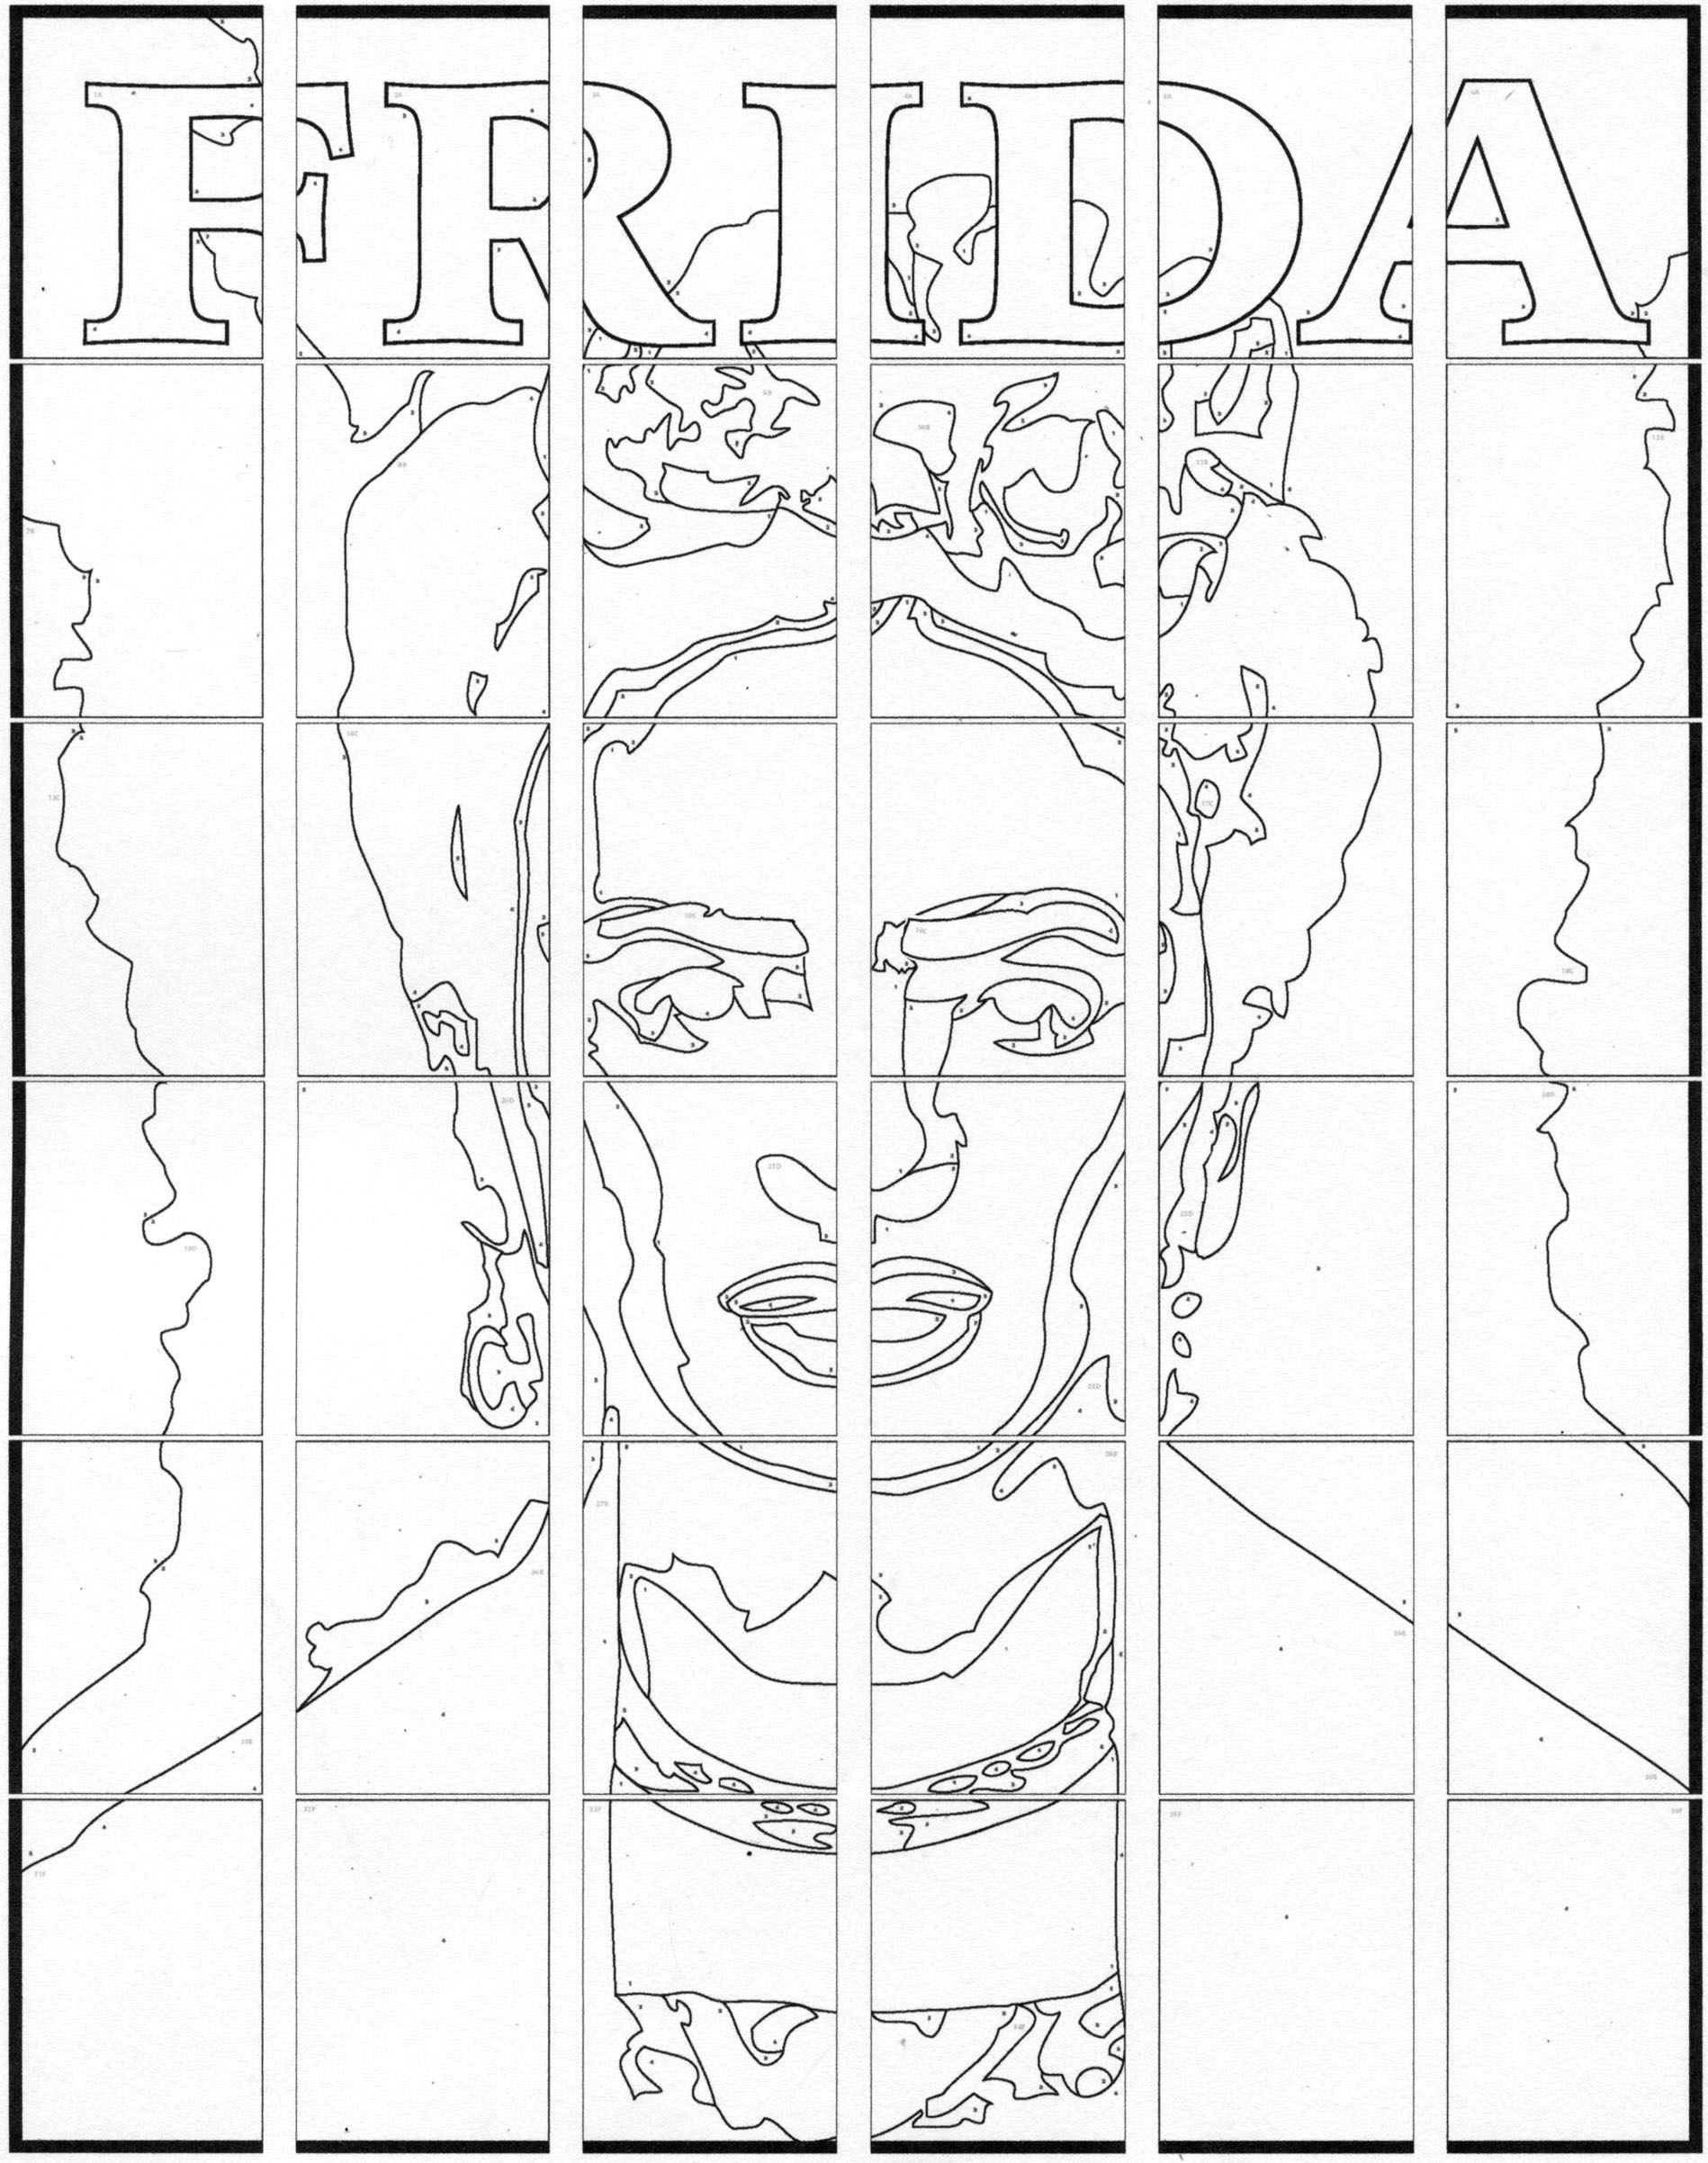 coloring art projects word coloring pages doodle art alley coloring projects art